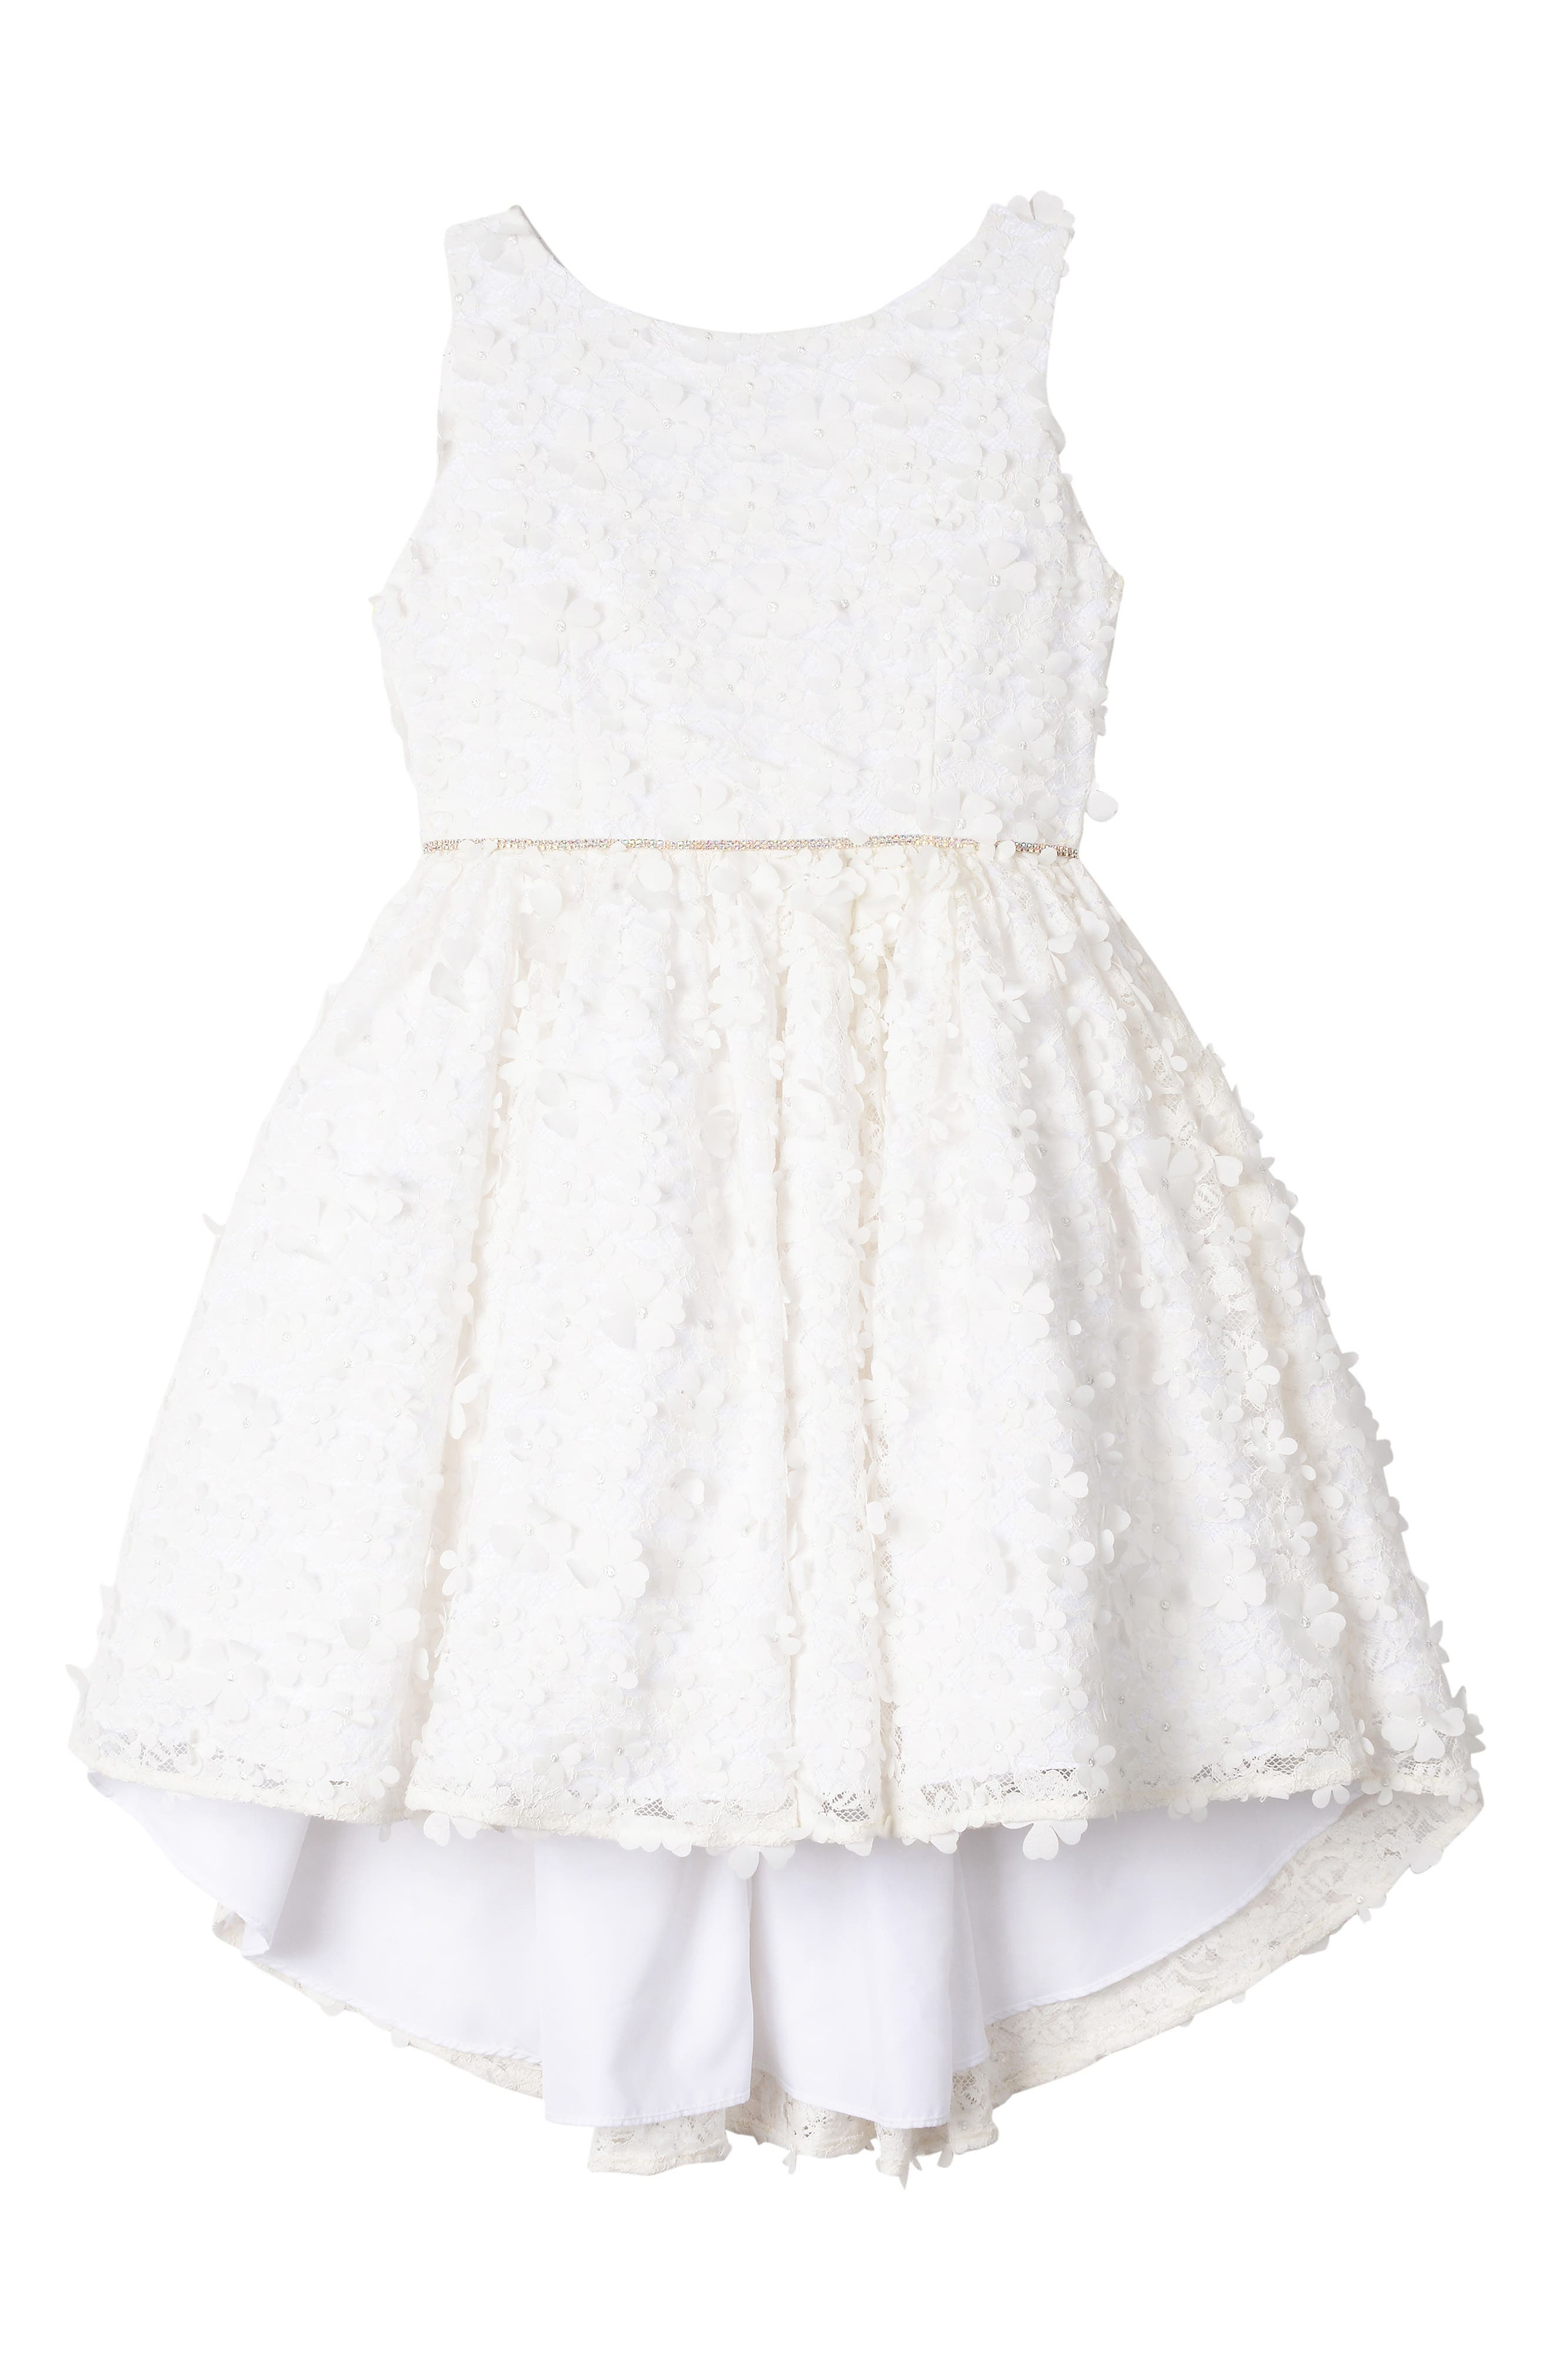 BADGLEY MISCHKA COLLECTION,                             Badgley Mischka 3D Flower High/Low Lace Dress,                             Main thumbnail 1, color,                             WHITE